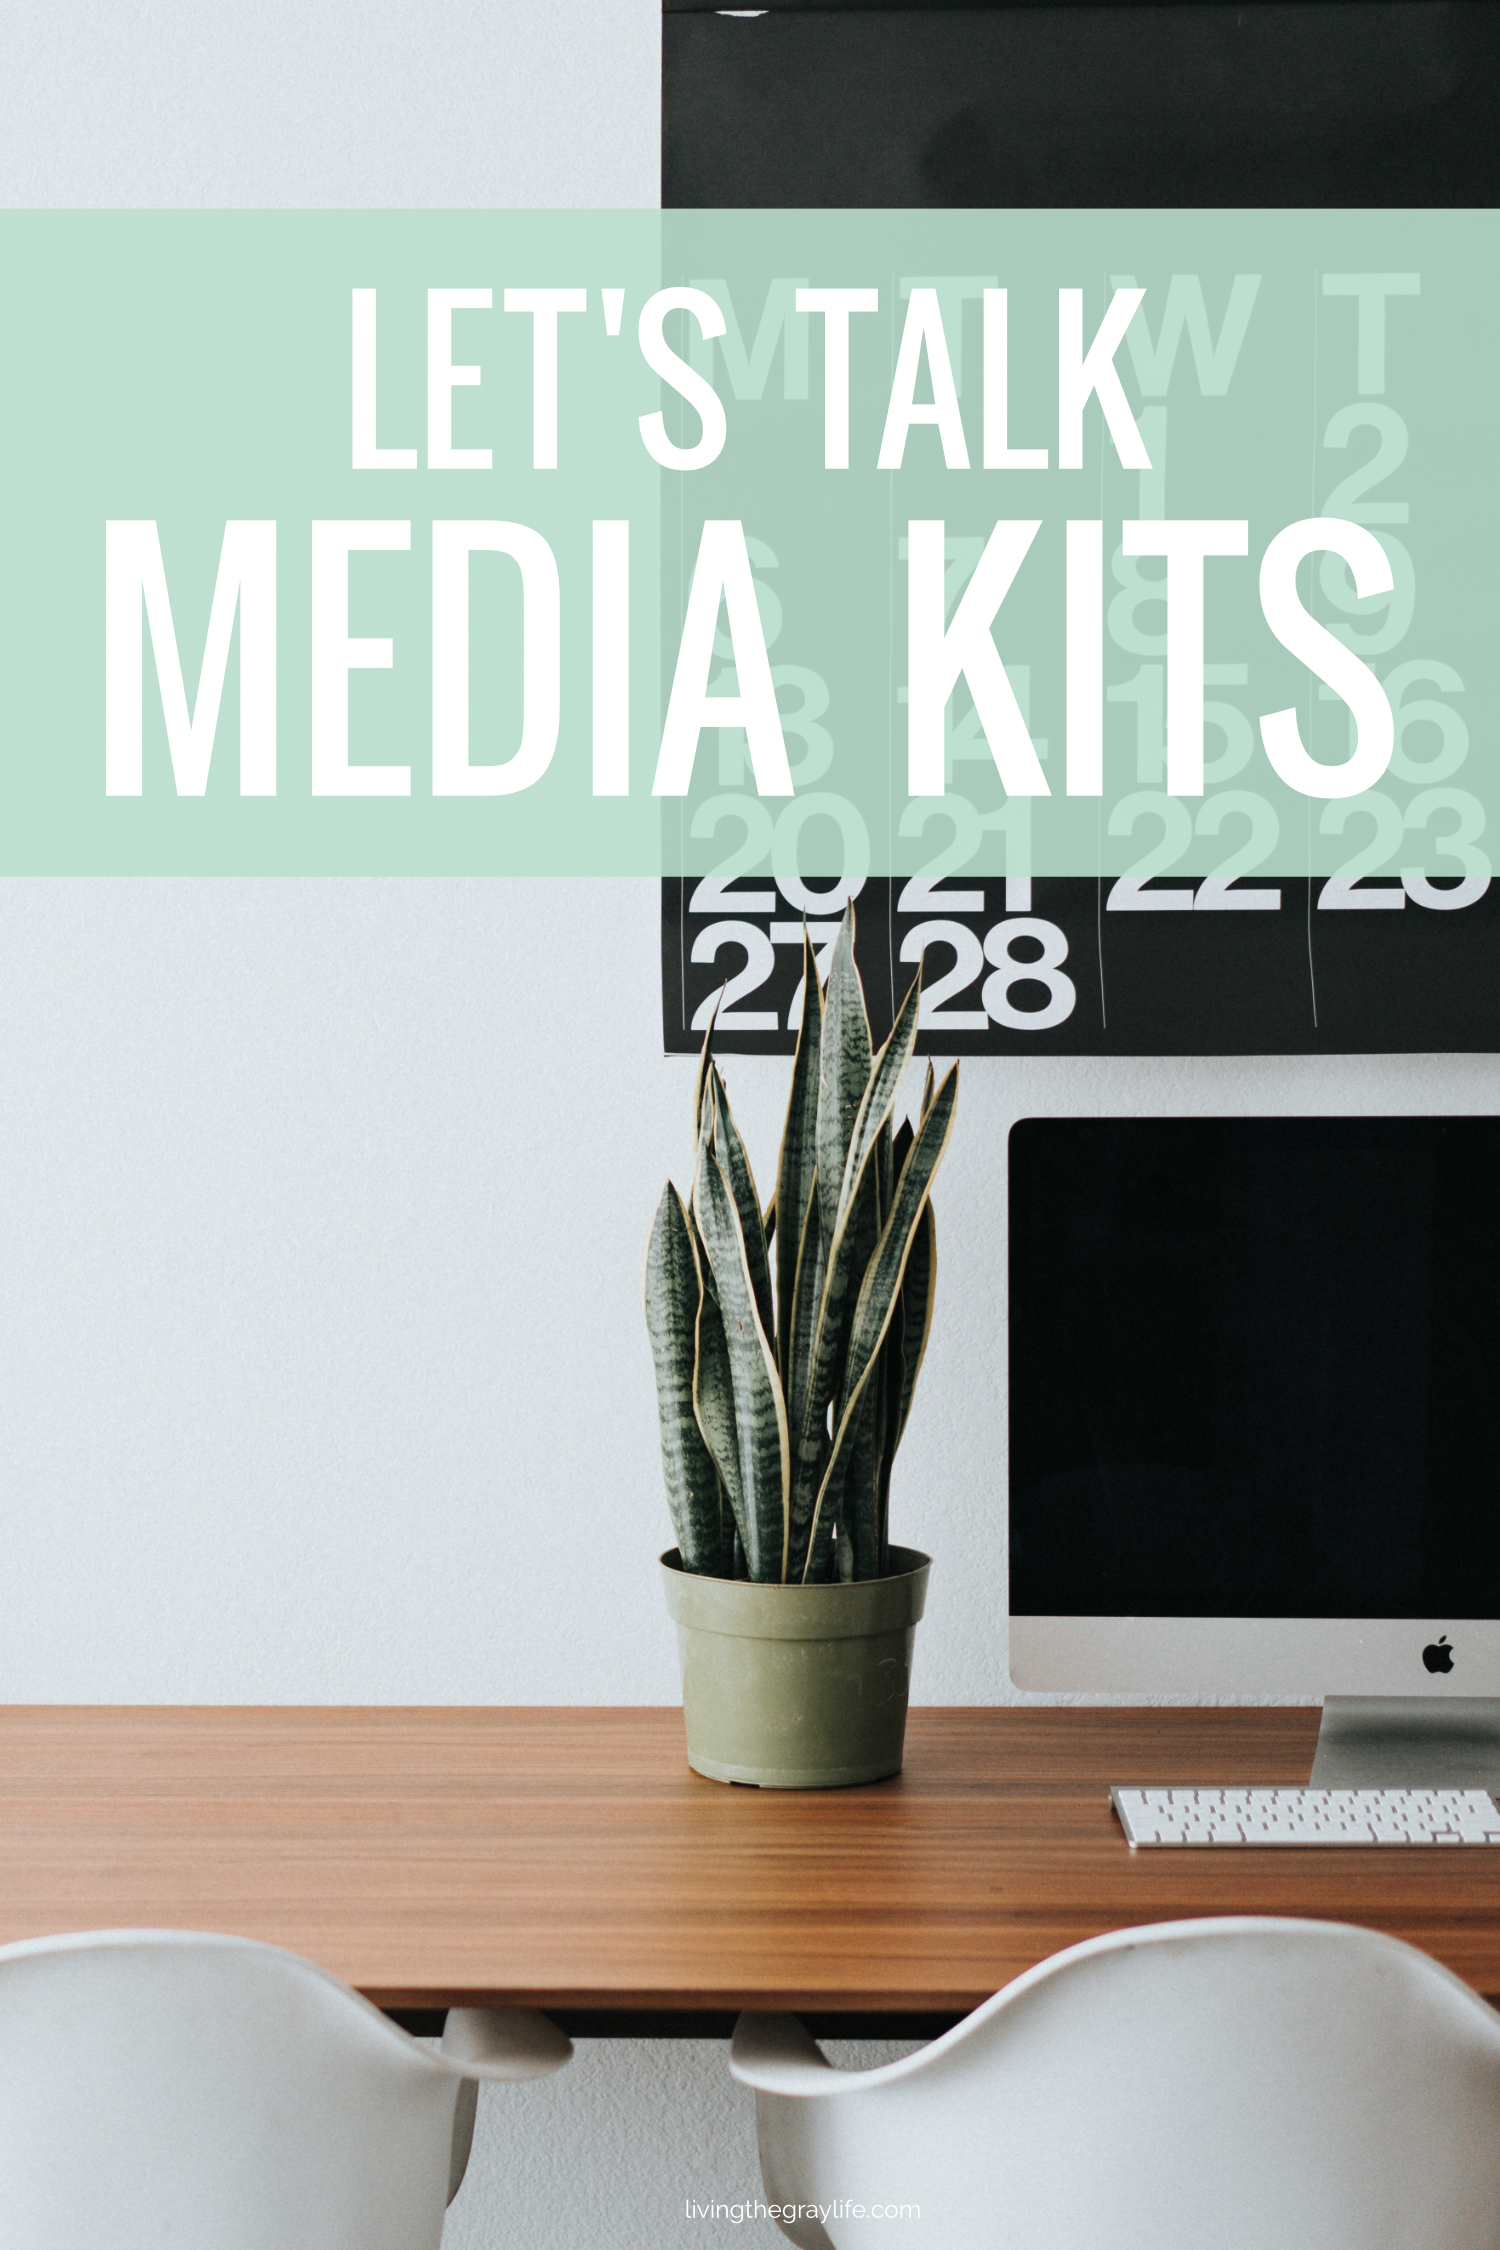 Having a media kit is essential for any size blogger. Learn how I made mine, what to include, and where to find design inspo!